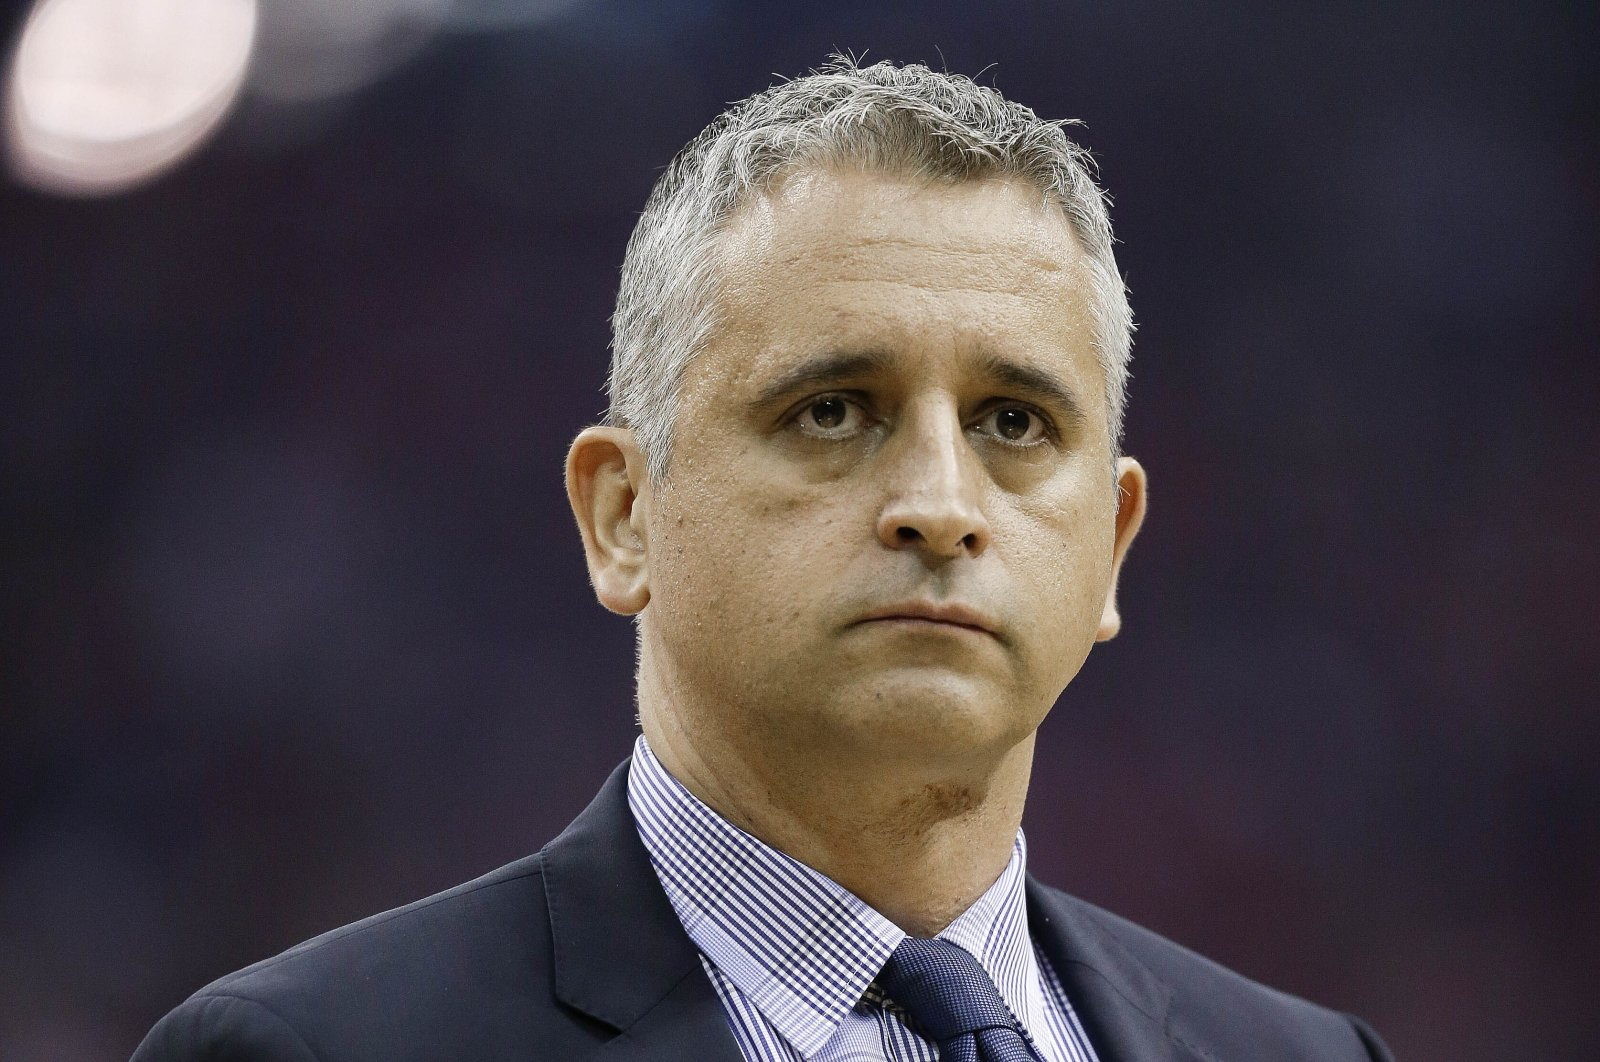 Utah Jazz assistant coach Igor Kokoskov stands during a timeout in the first half of game 2 in the team's NBA basketball second-round playoff series against the Houston Rockets, in Houston, May 2, 2018. (AP Photo)